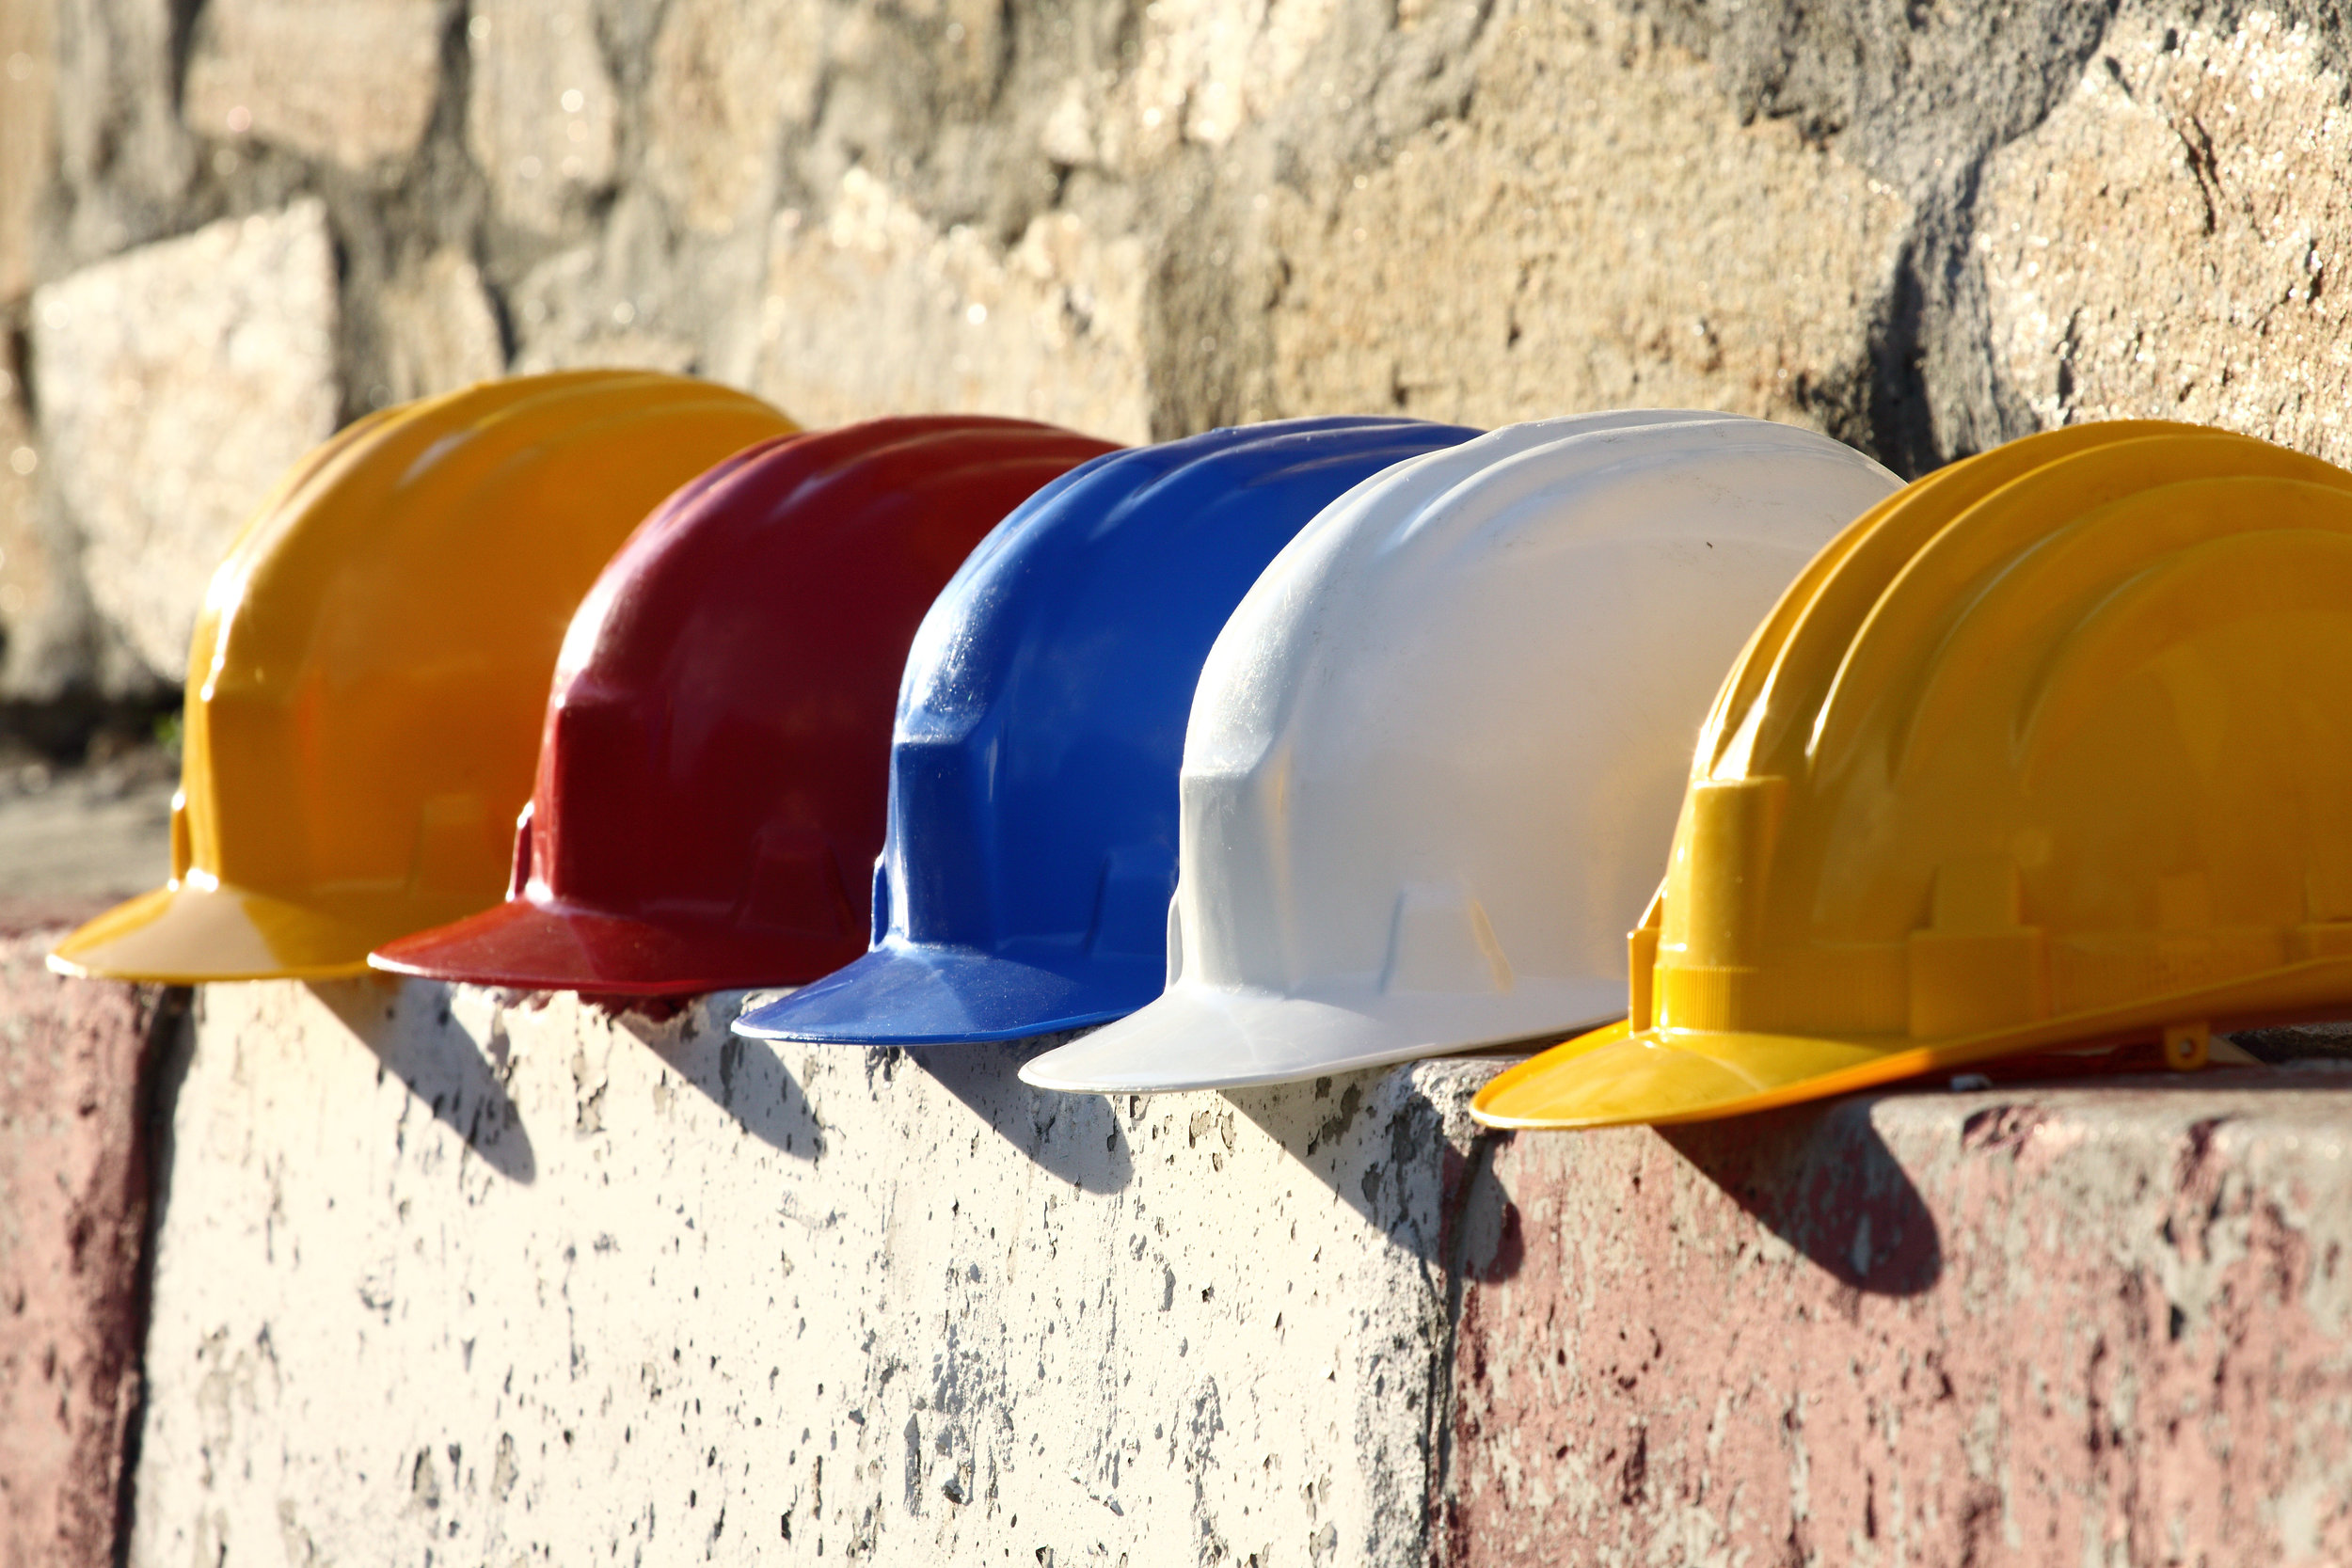 Construction Hard Hats in a Row